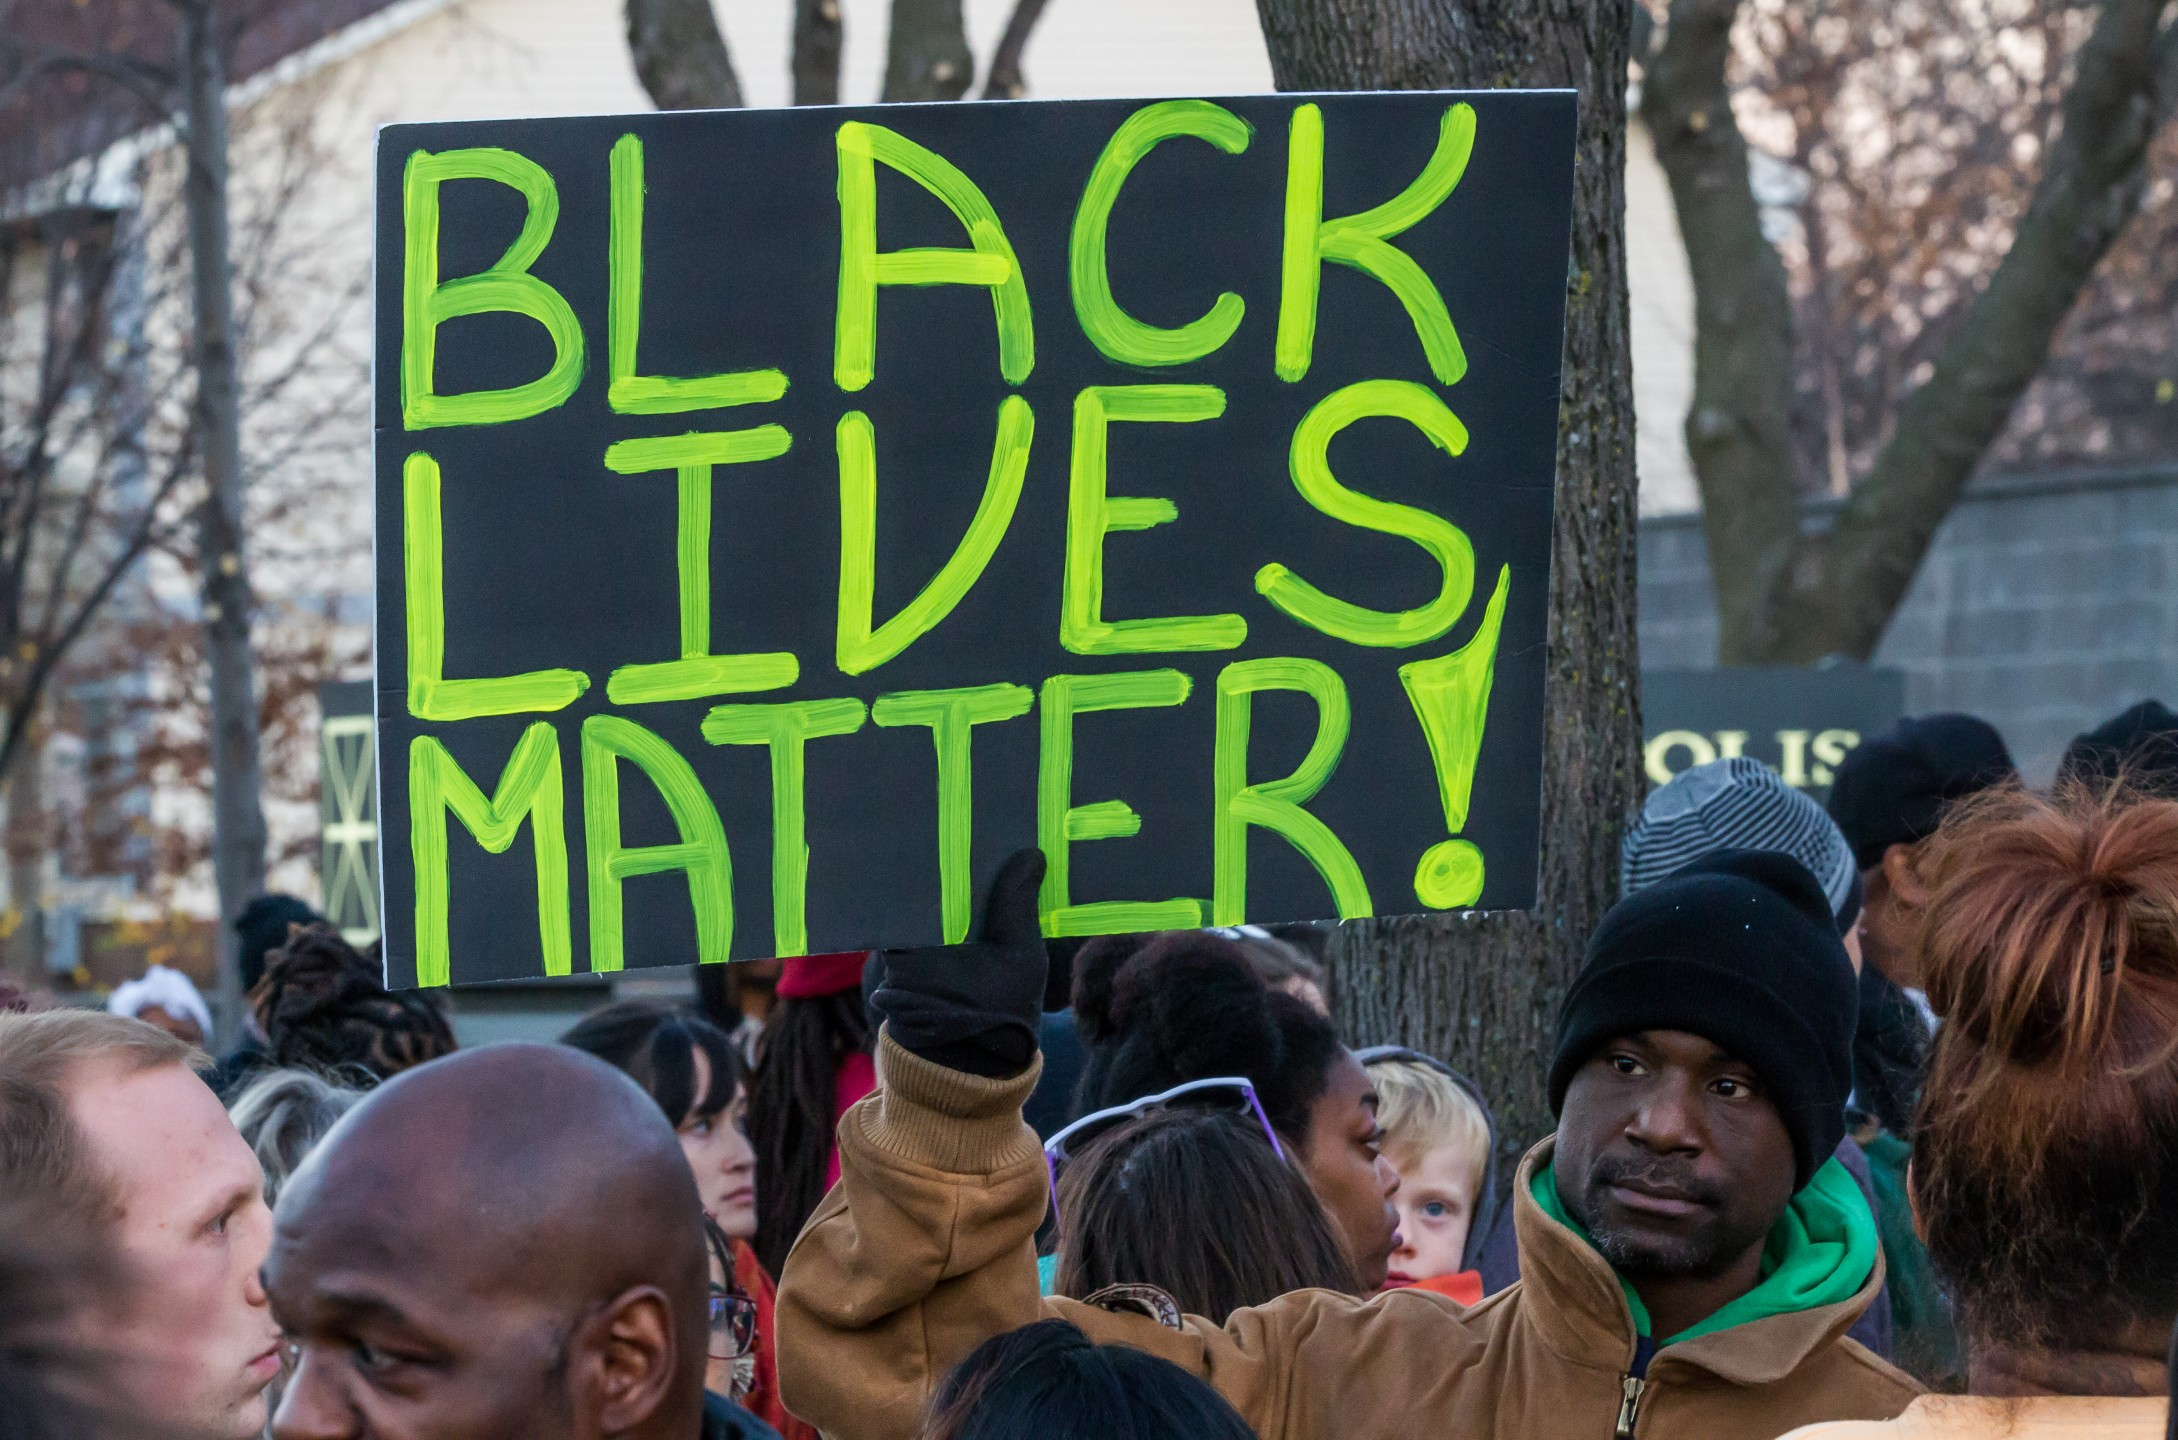 black_lives_matter_sign_-_minneapolis_protest_22632545857.jpg